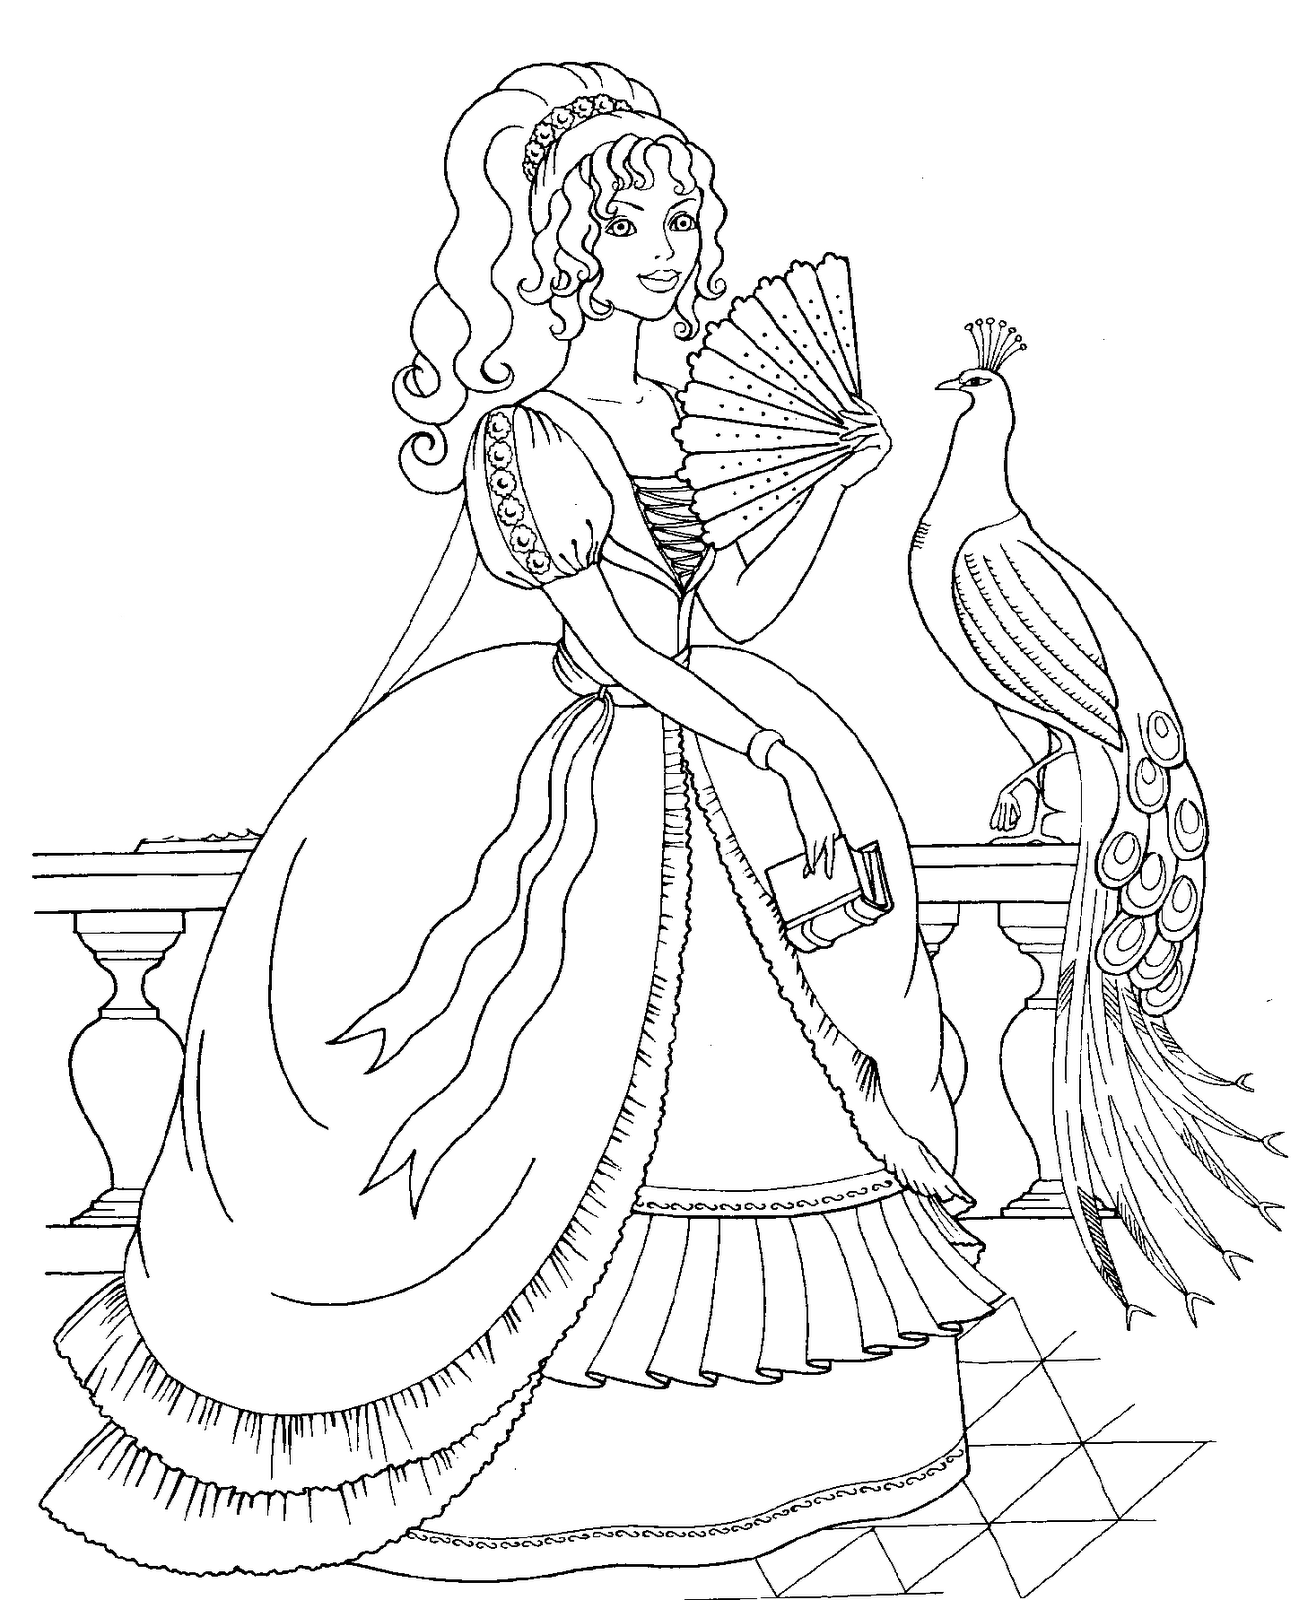 Disney Princess And Animals Coloring Pages To Kids Princess Coloring Pages For Adults Printable